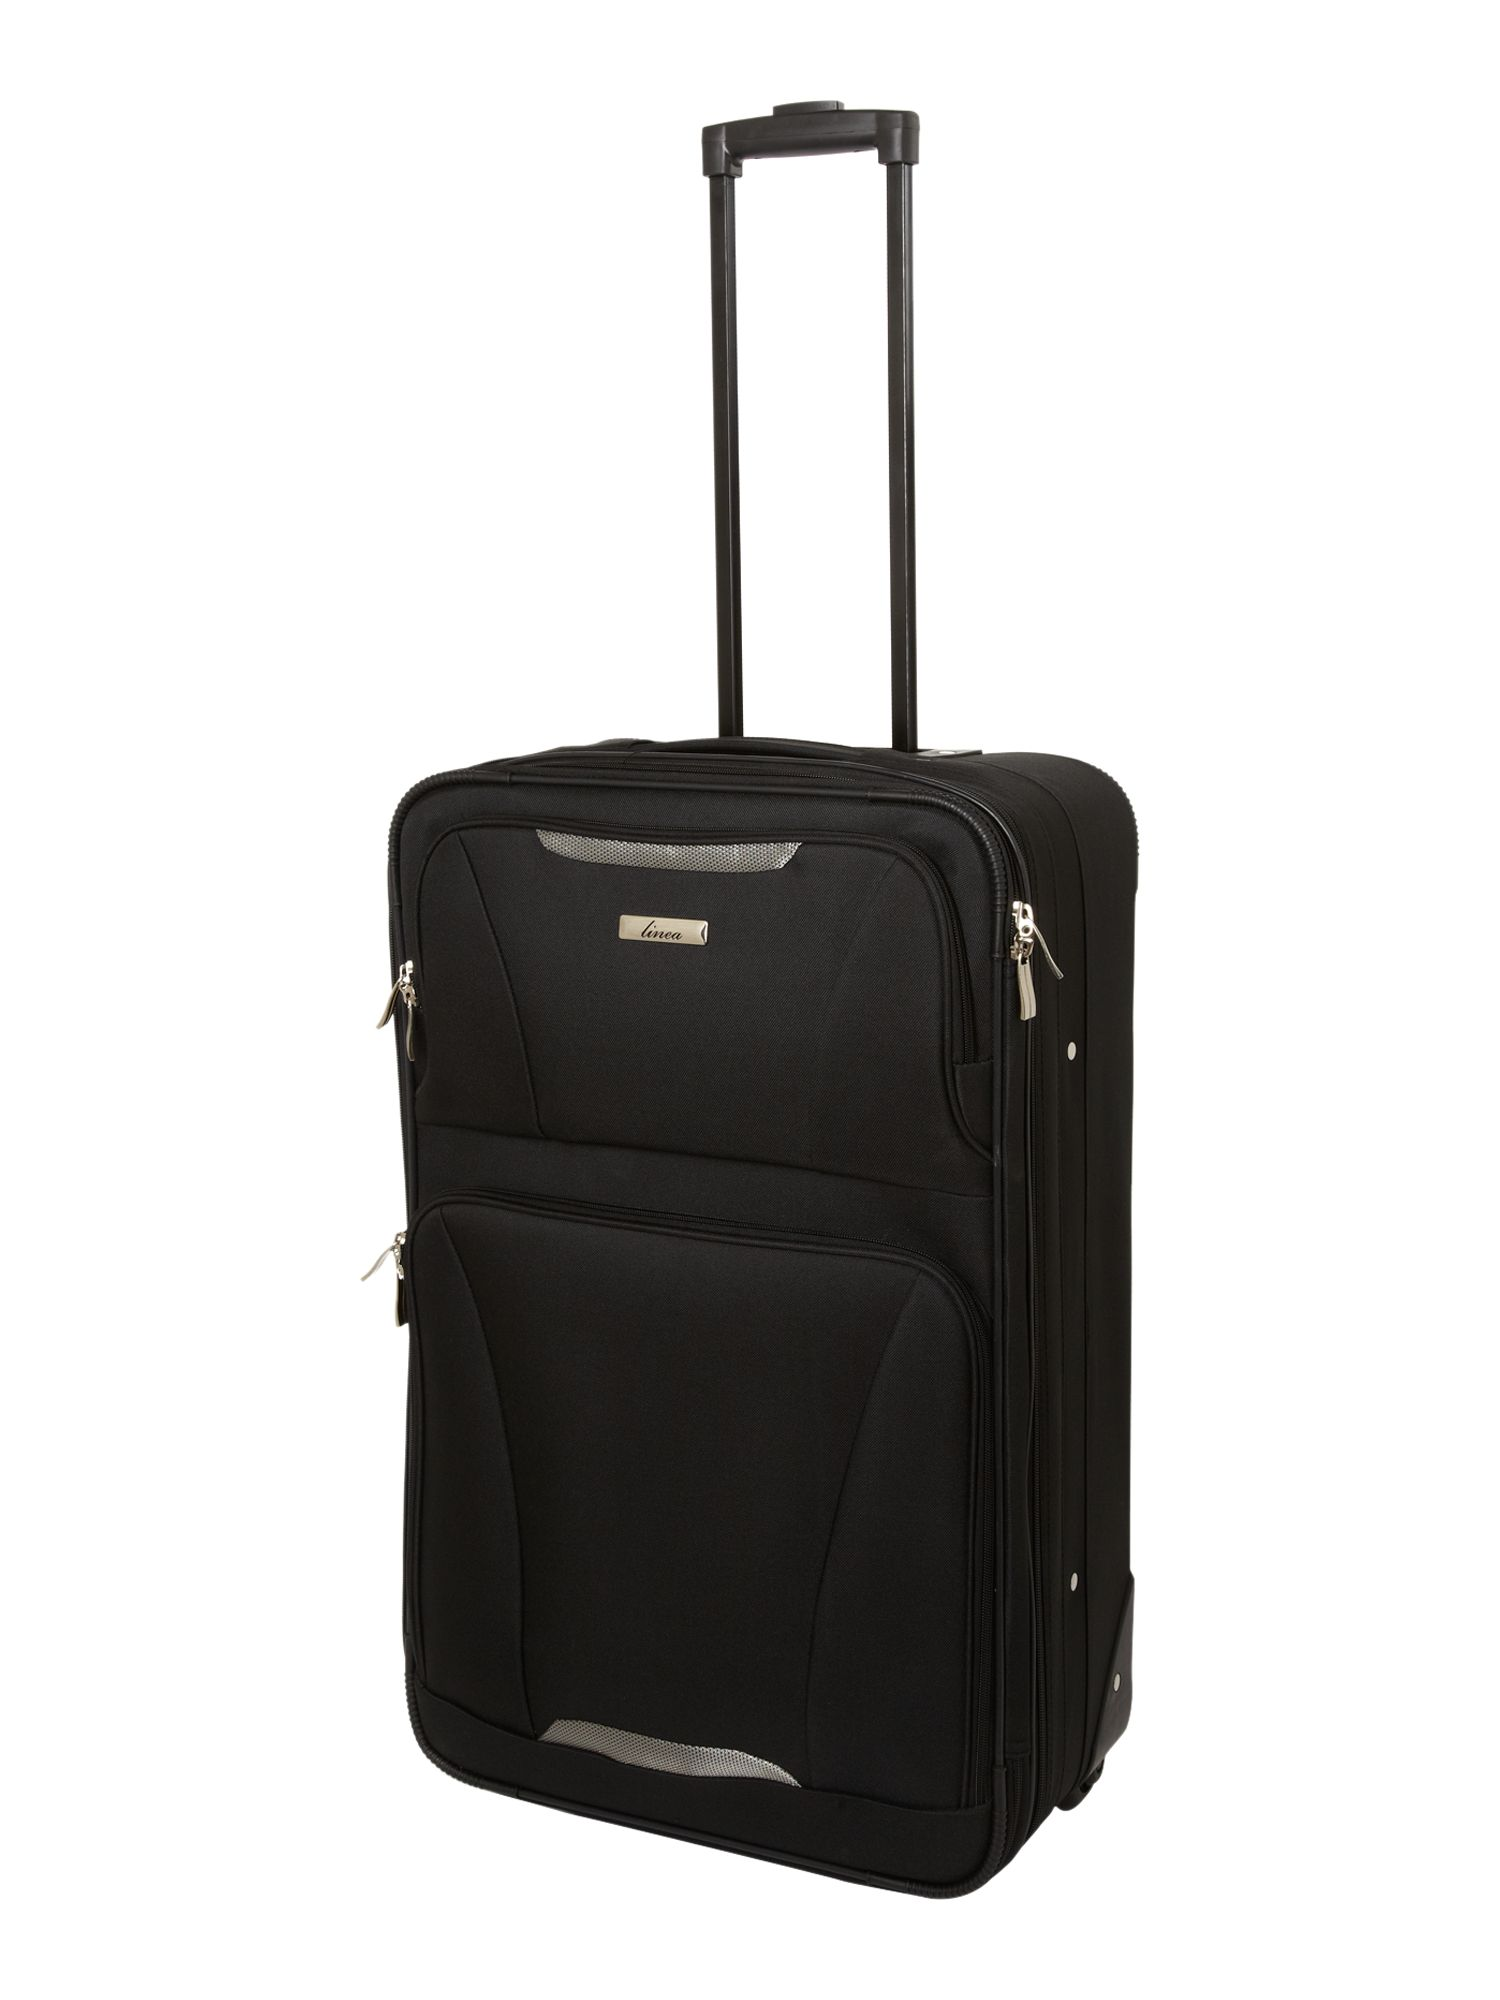 Arizona medium 2 wheel suitcase